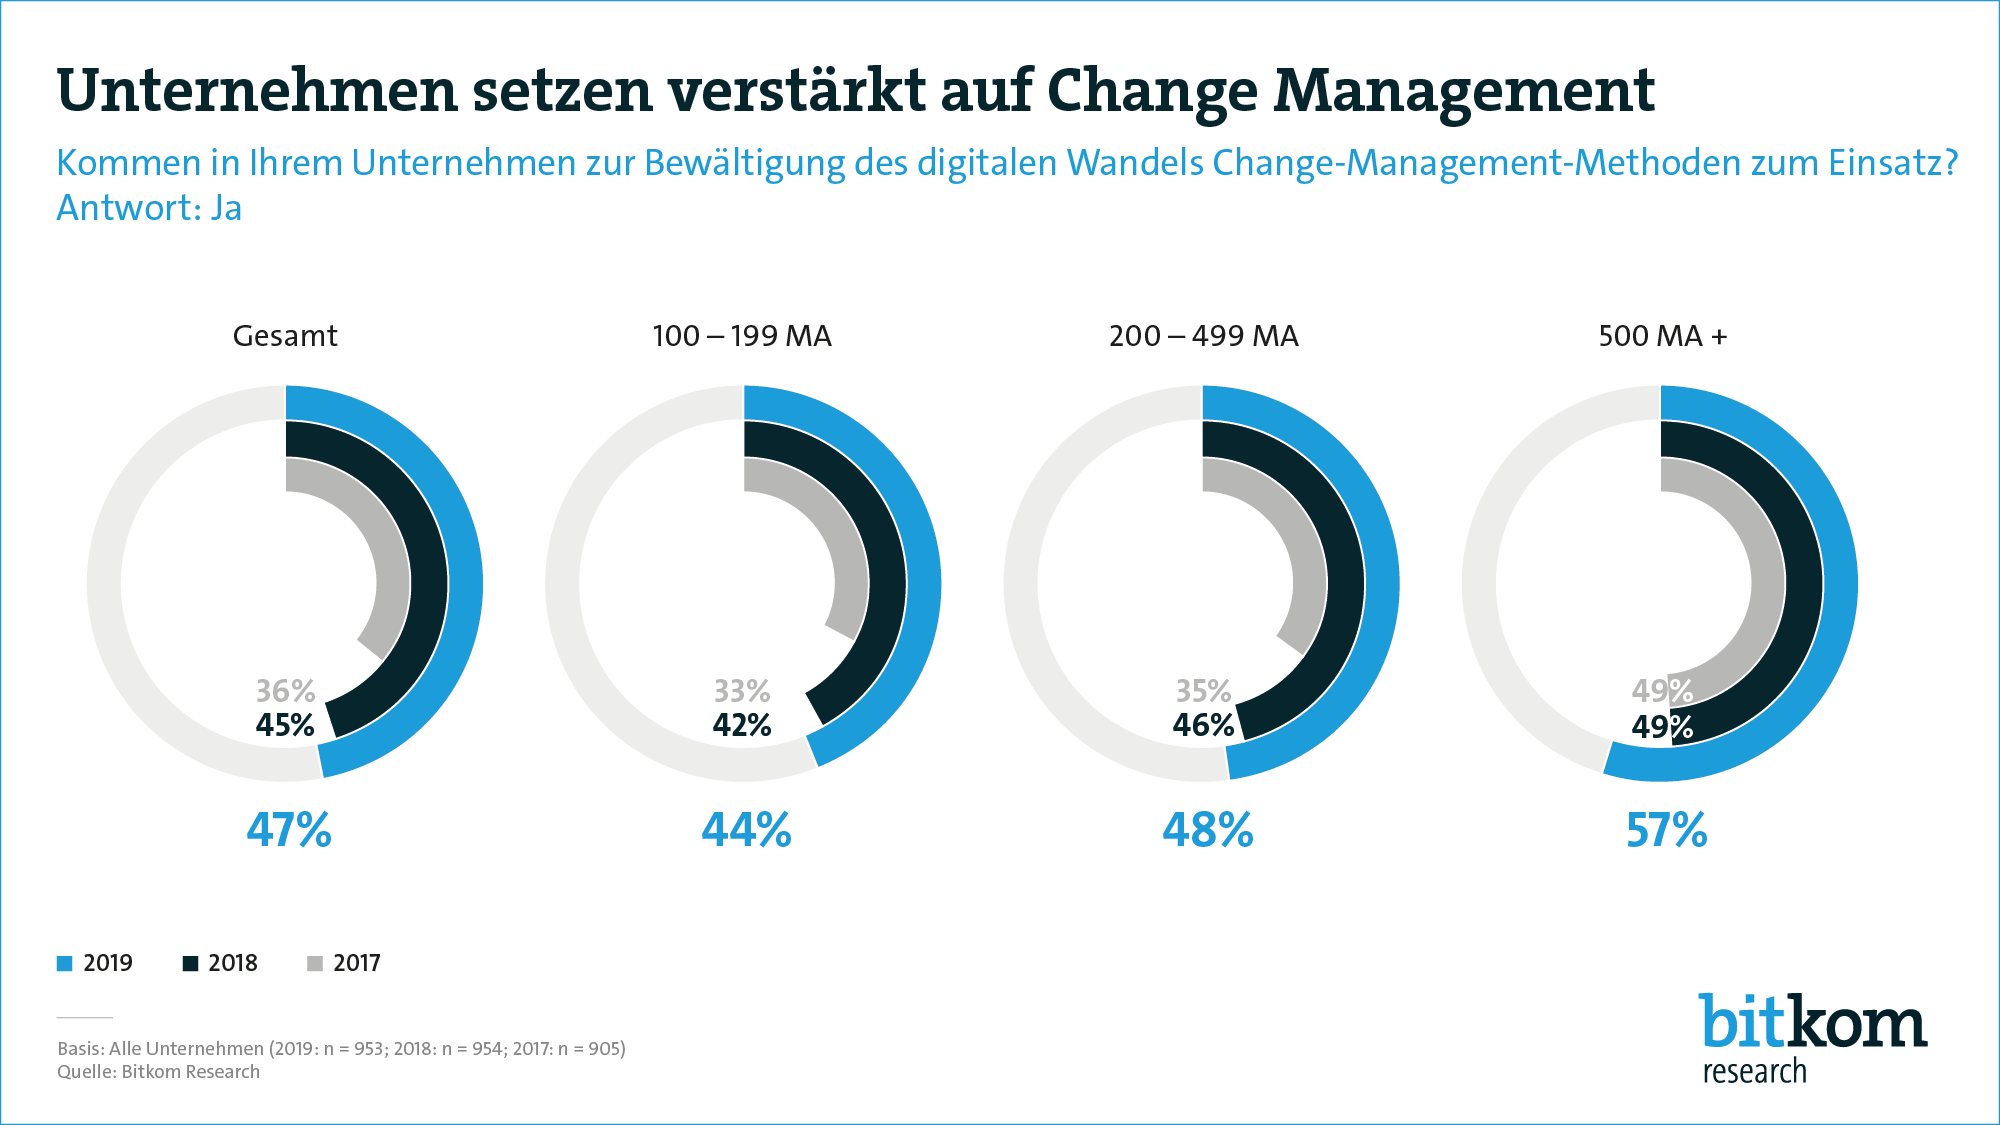 Change-Management-Methoden